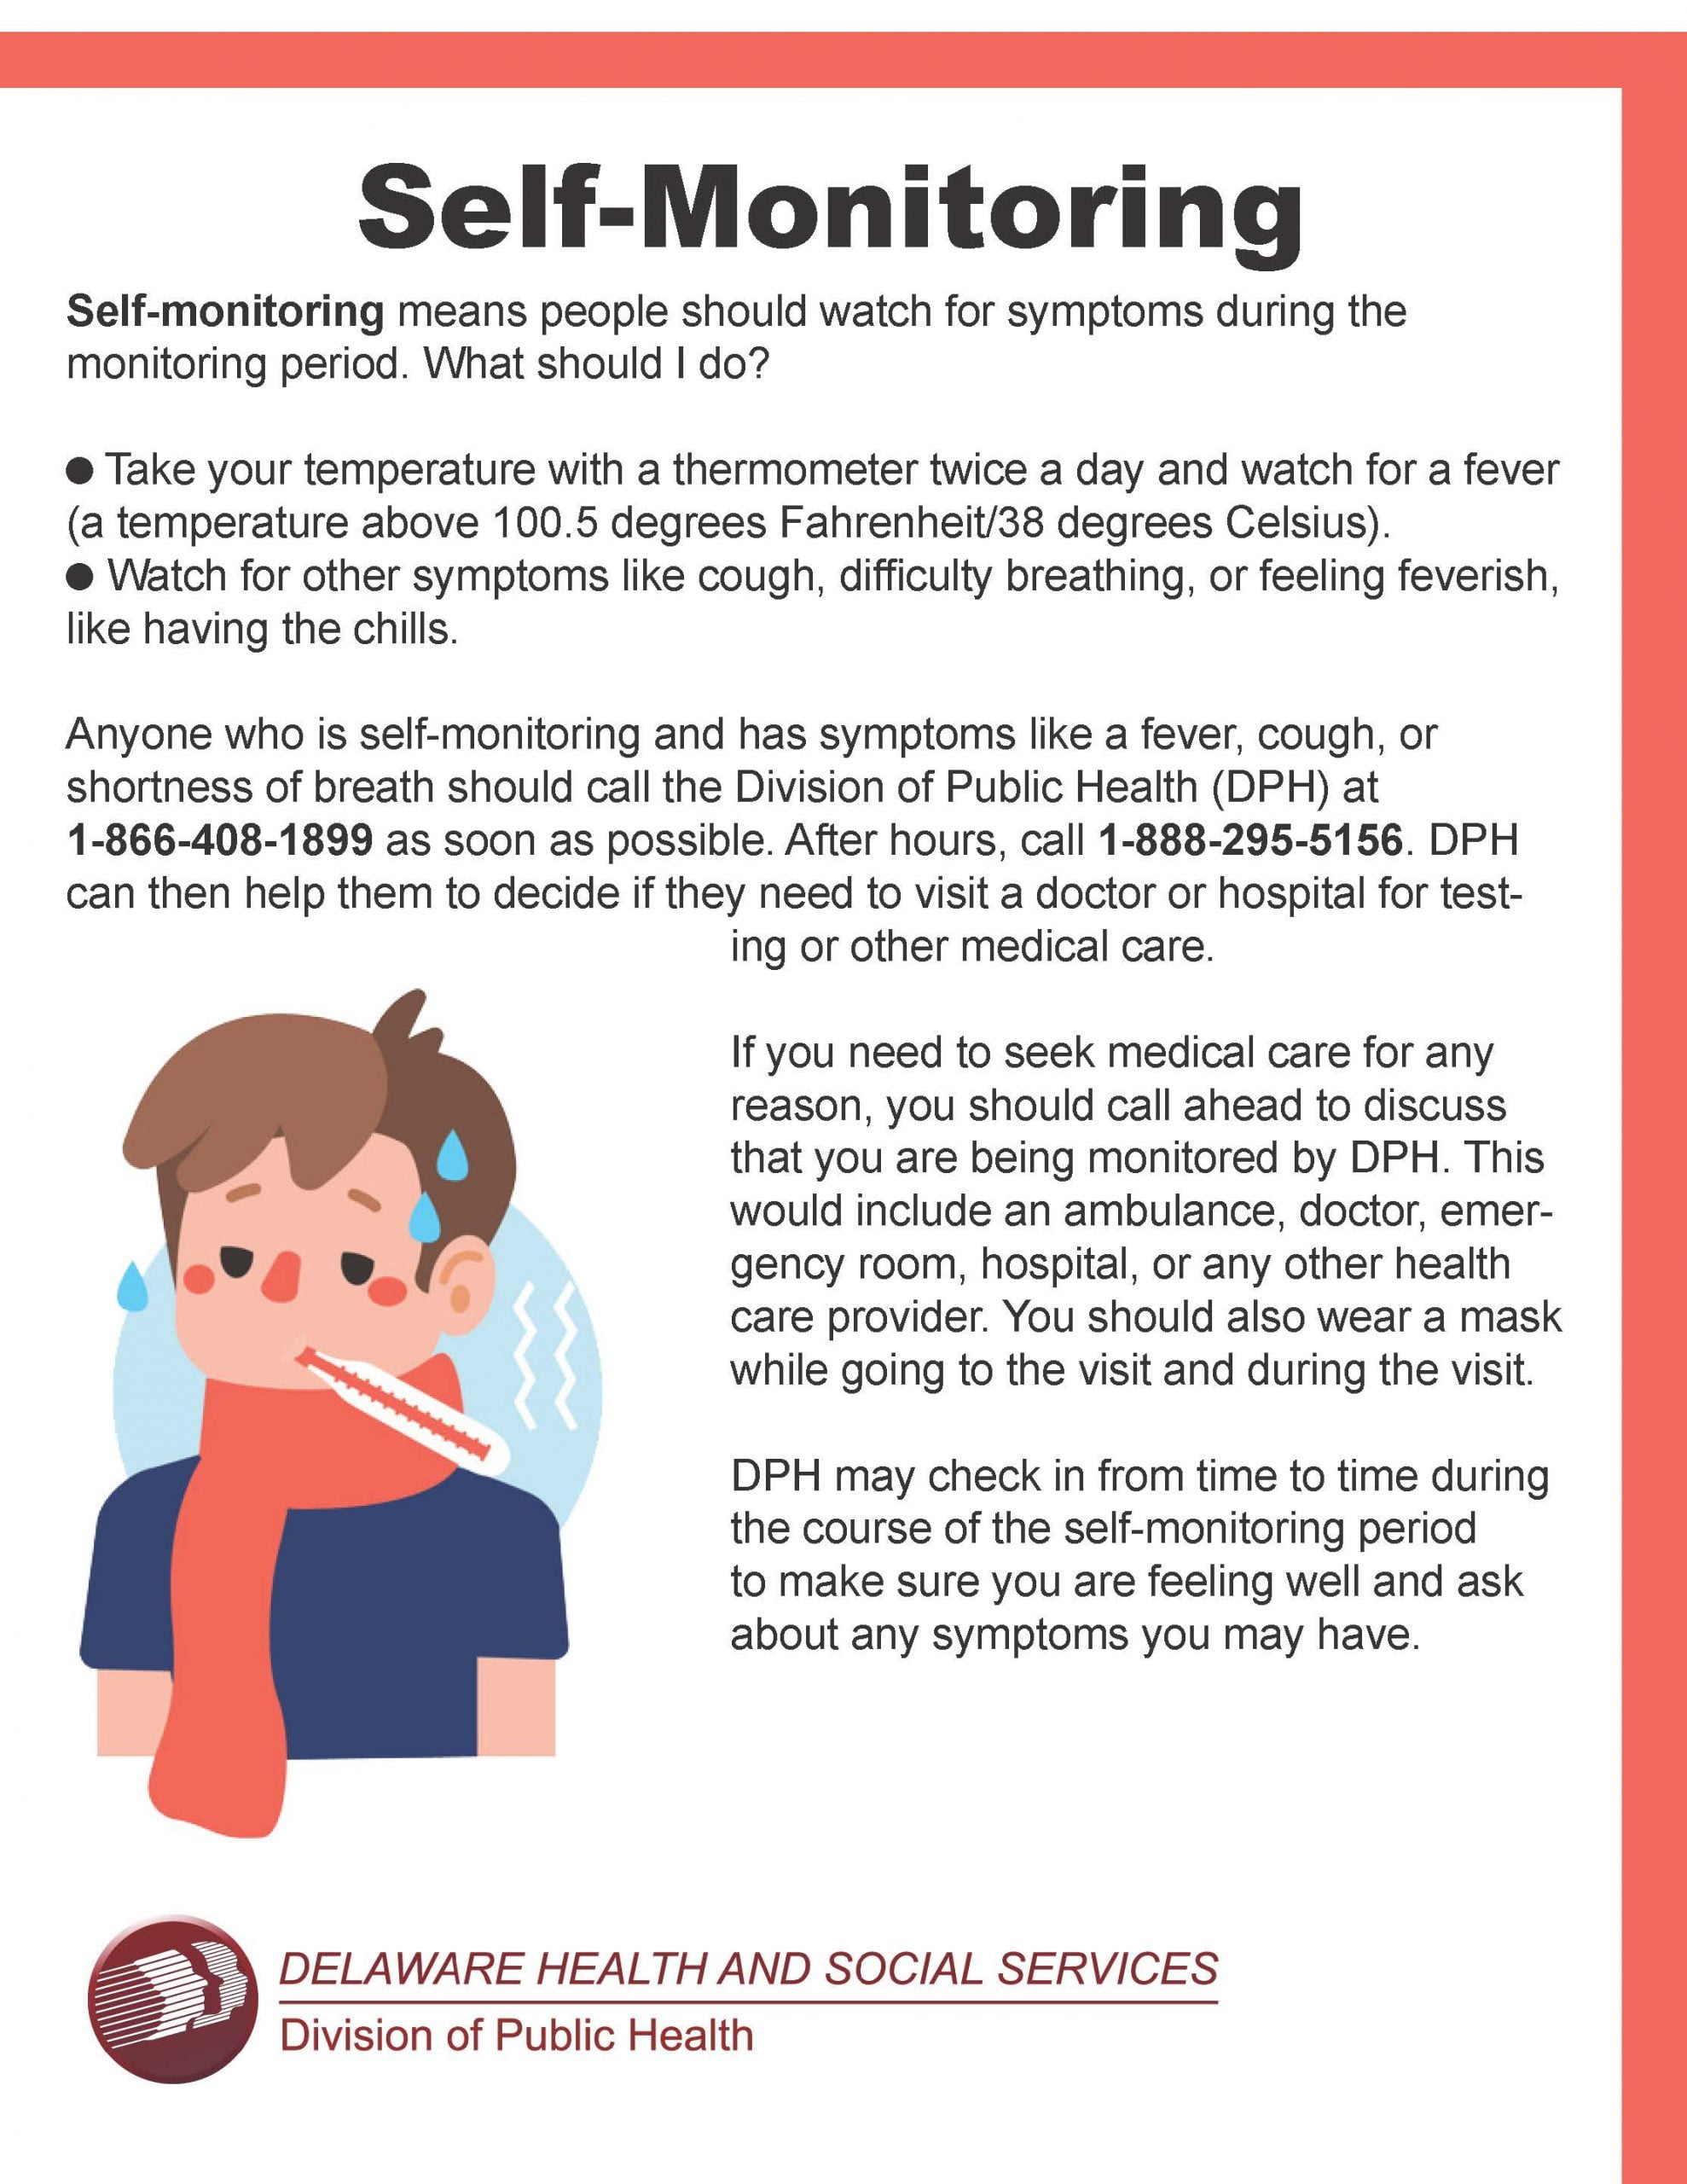 Document outlining self-monitoring for COVID-19 by the Delaware Health and Social Services Division of Public Health.